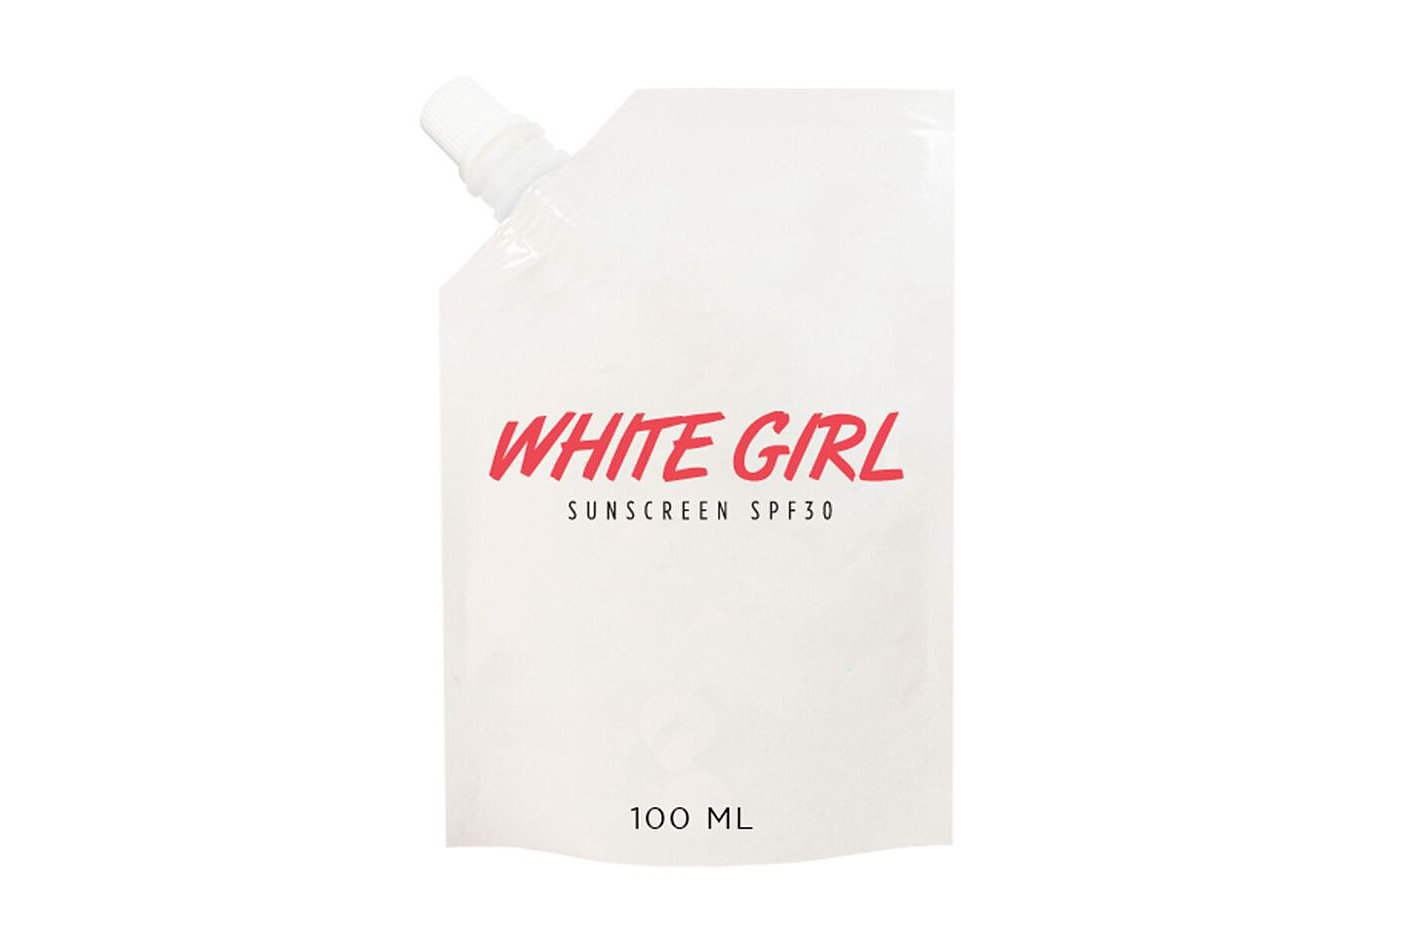 white girl sunscreen pouch